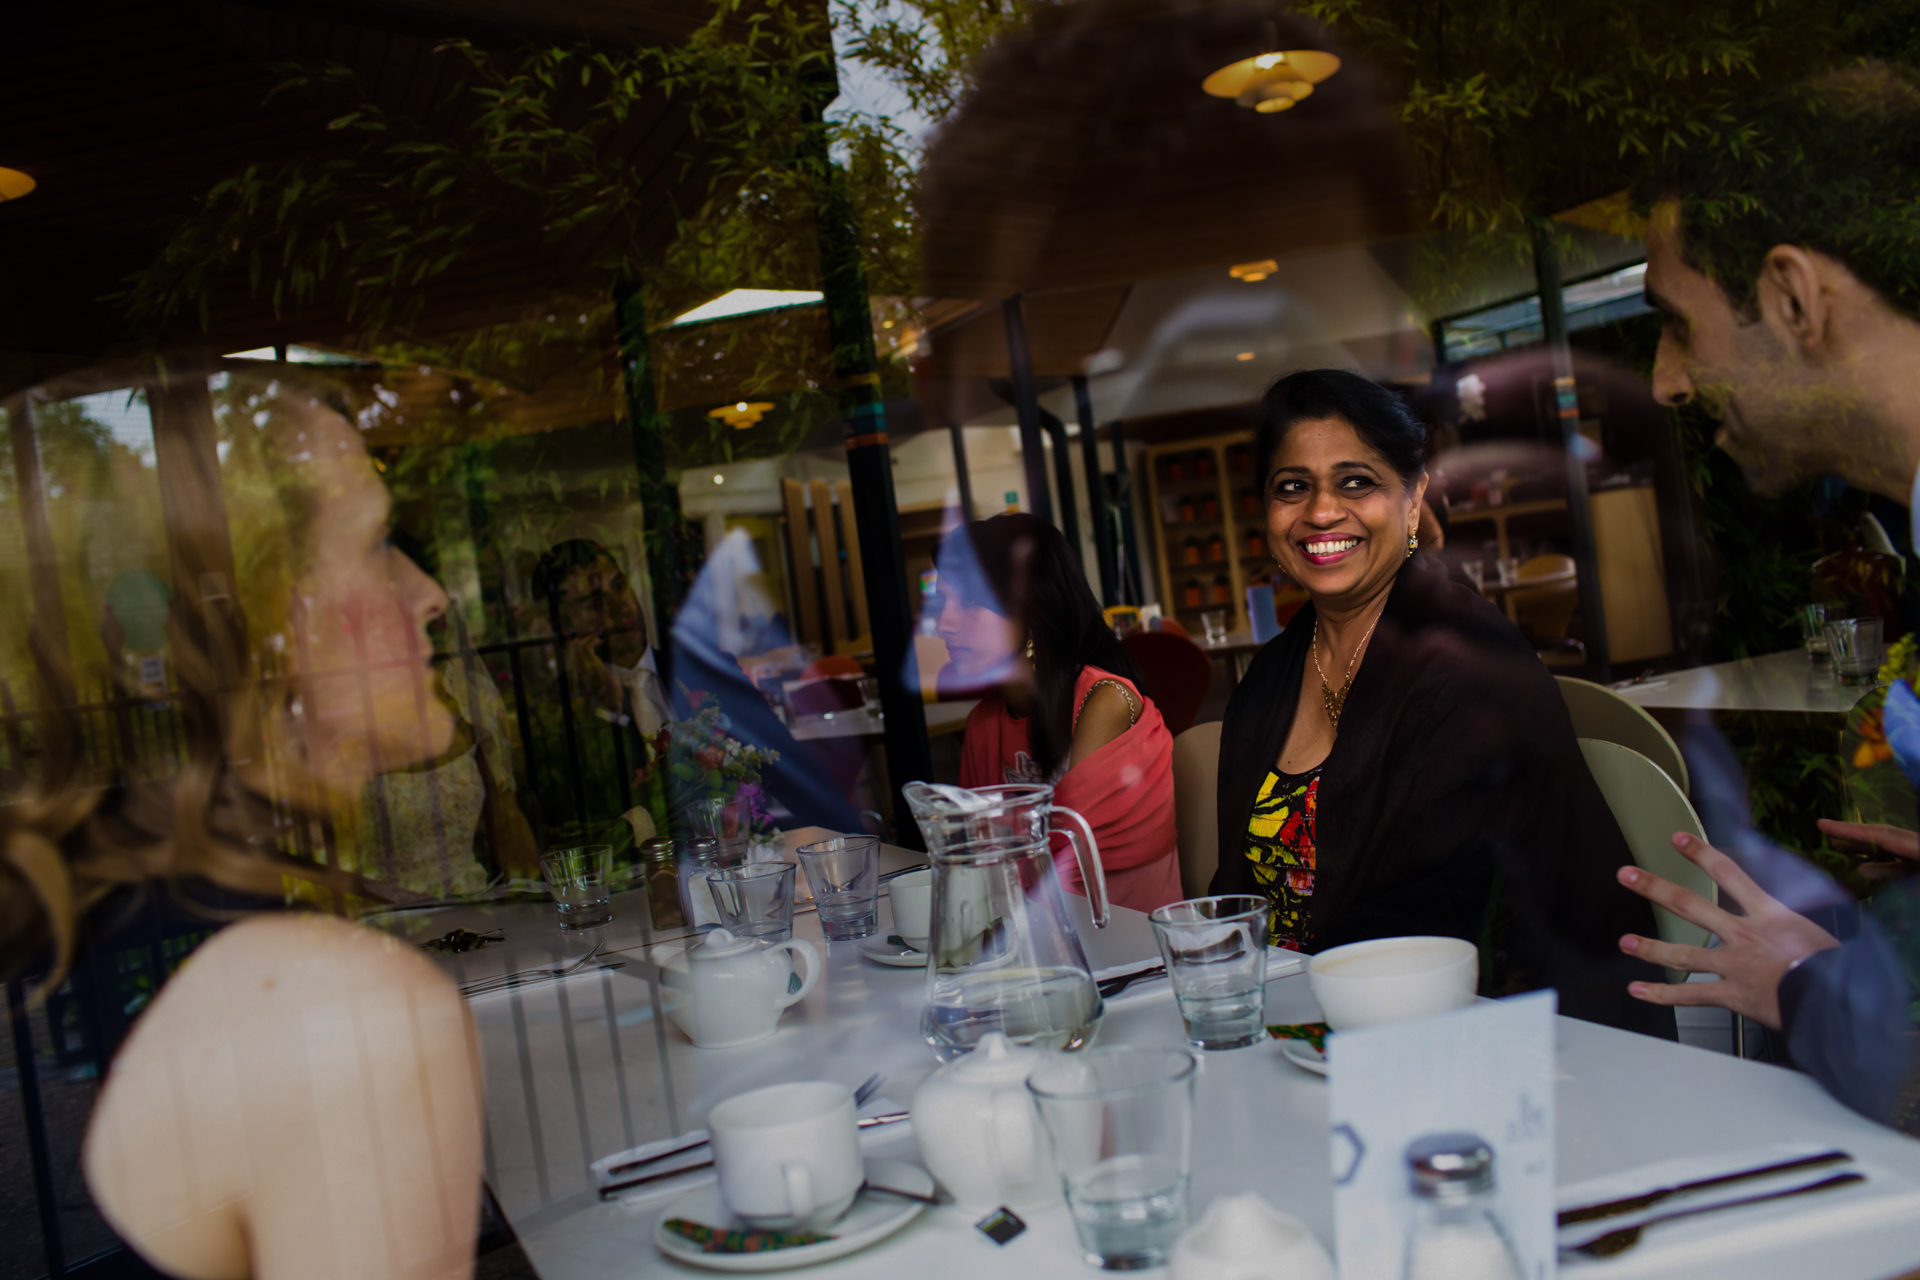 London Wedding Reception Image from Regents Park | The family shares warm smiles and animated conversation